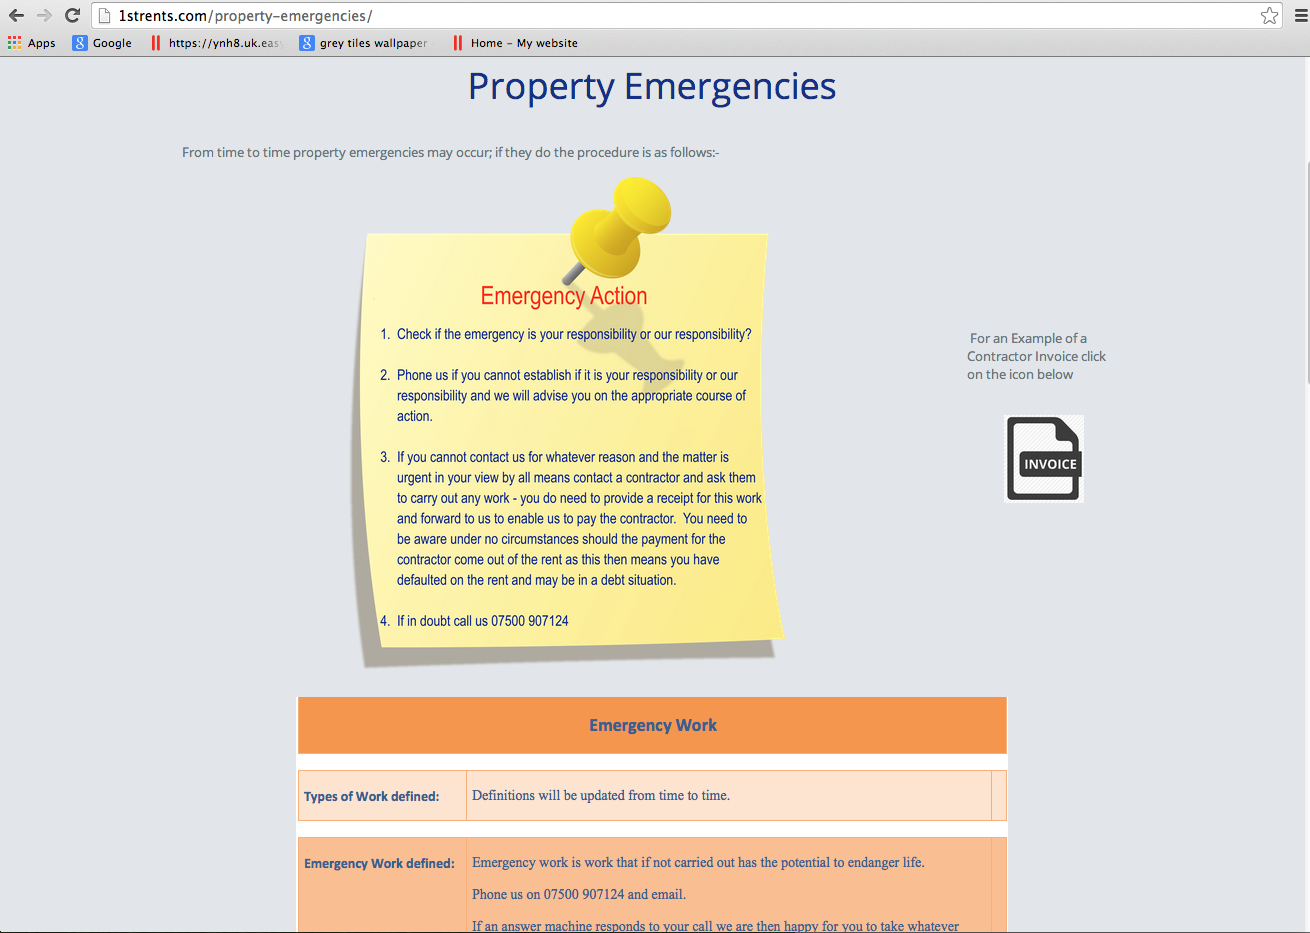 1strents.com - Property Emergencies